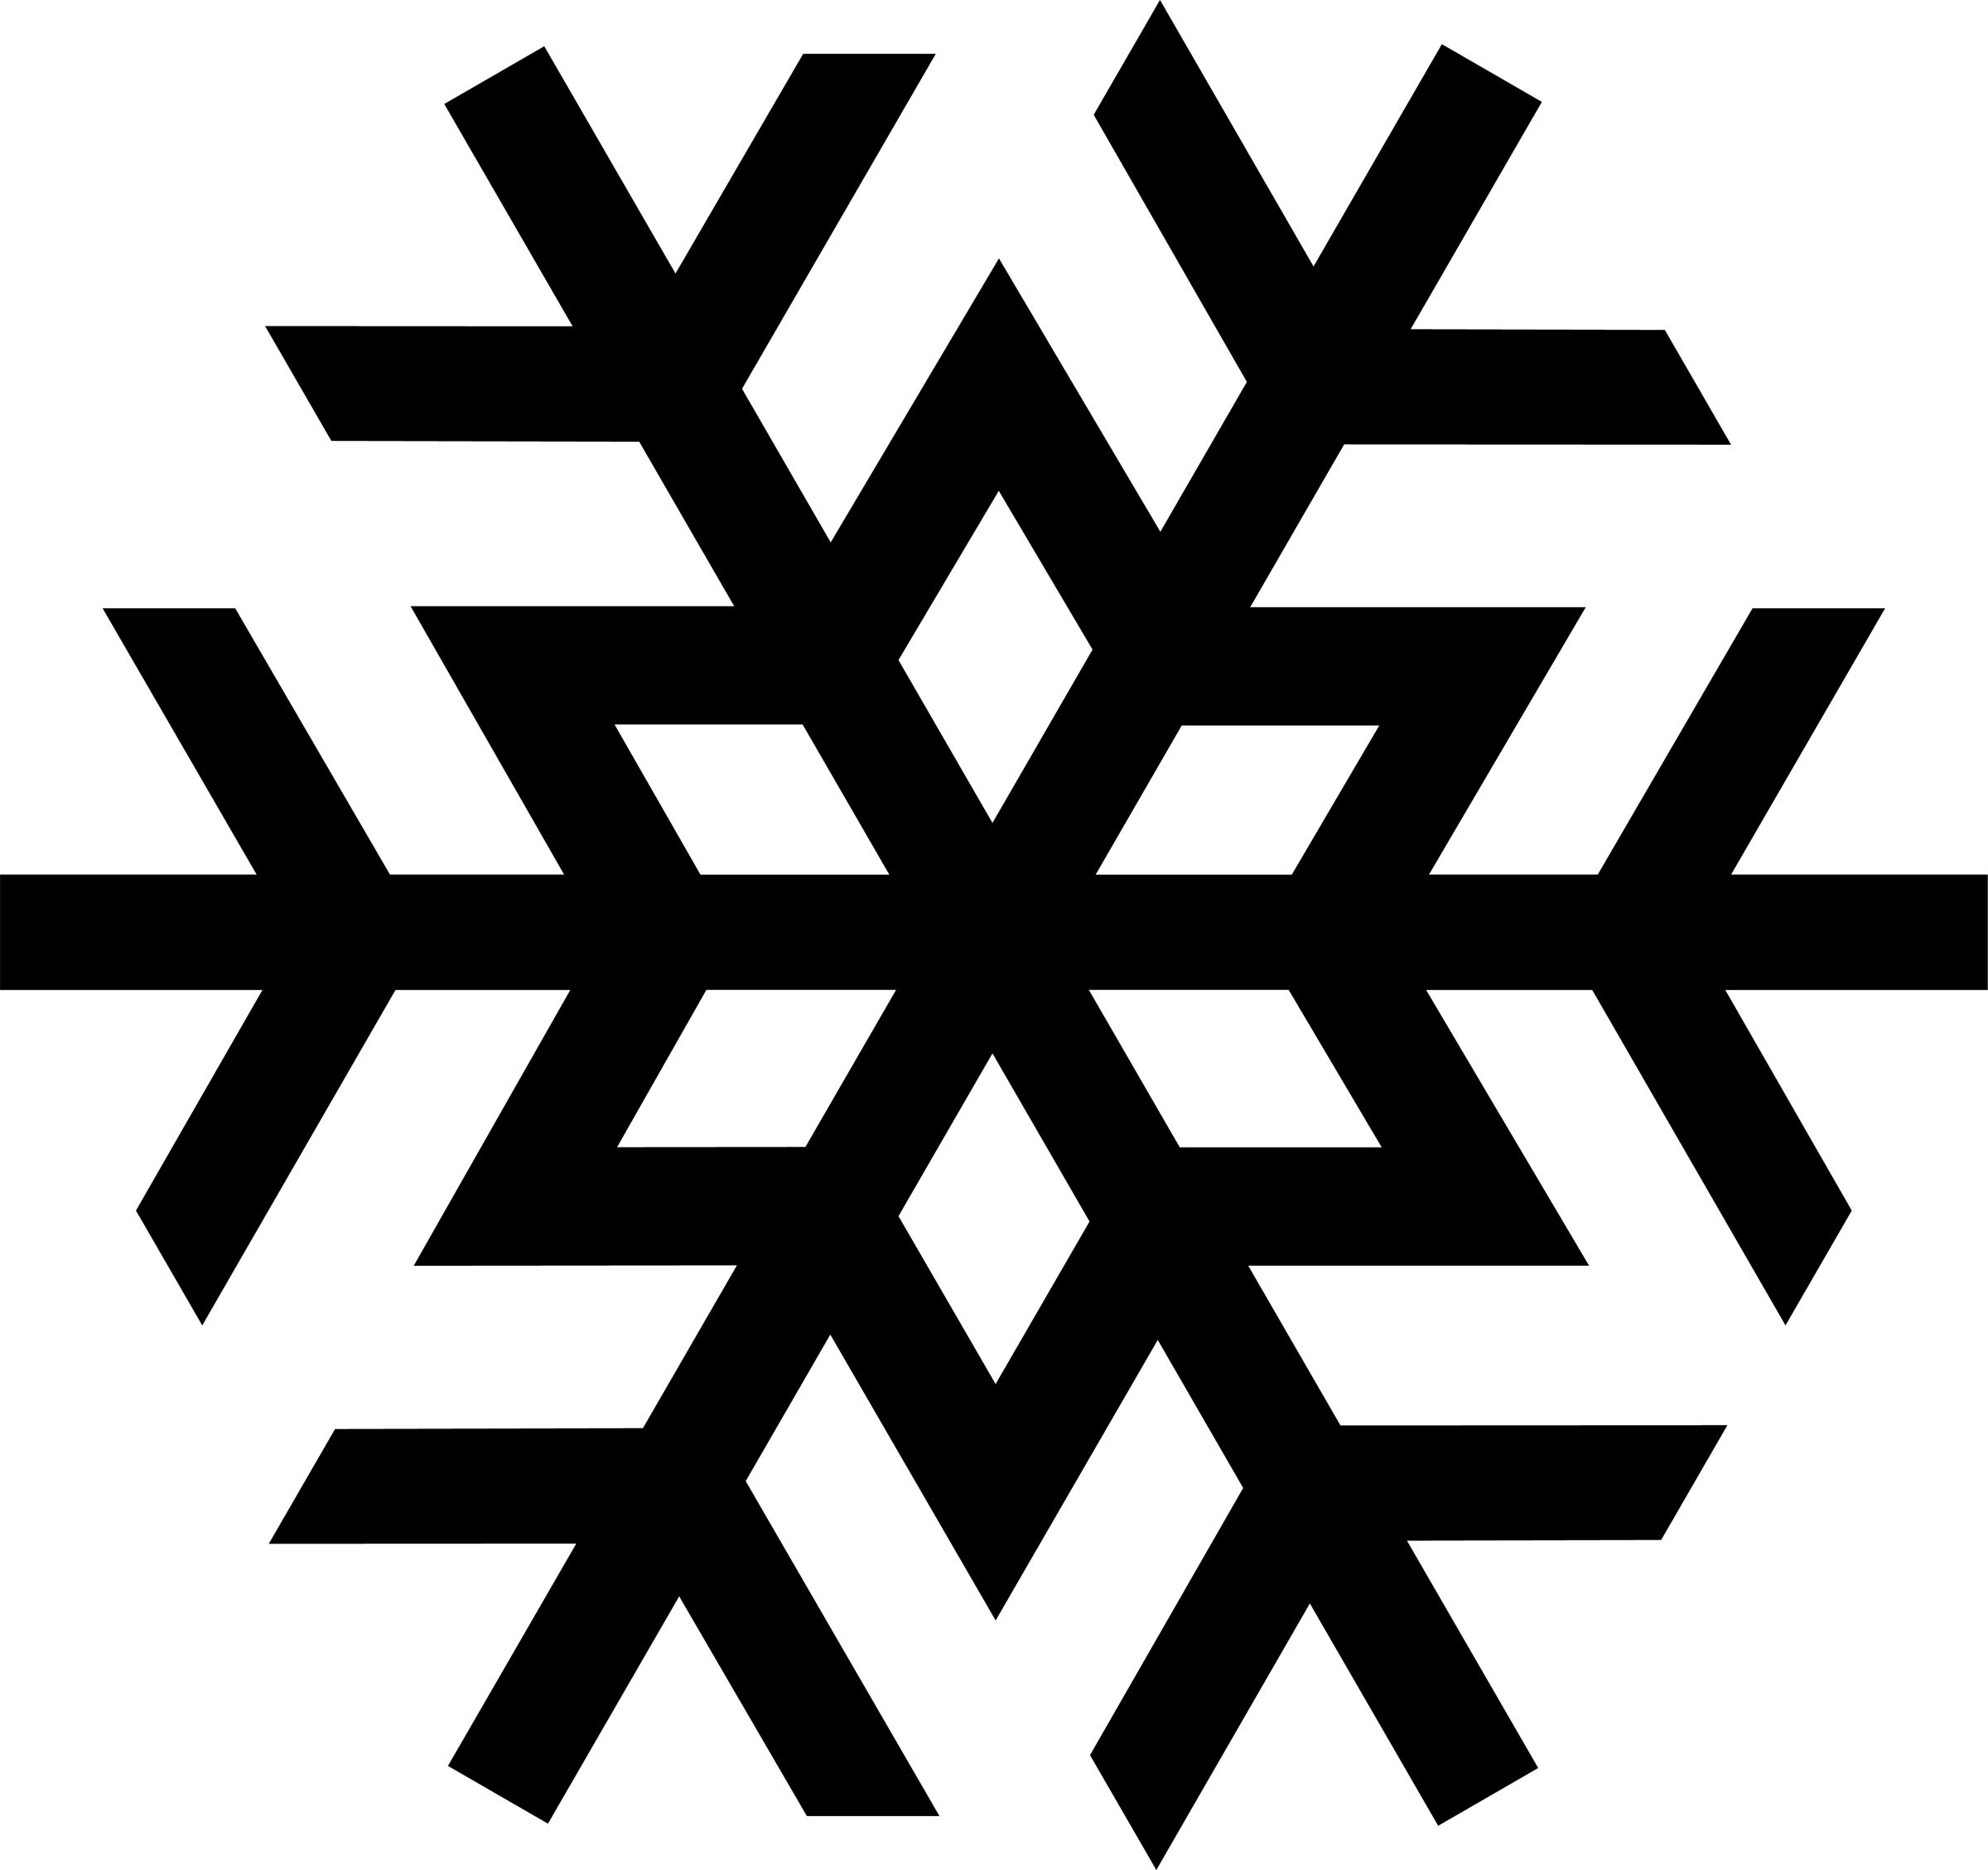 10+ Royalty free snowflake clipart ideas in 2021